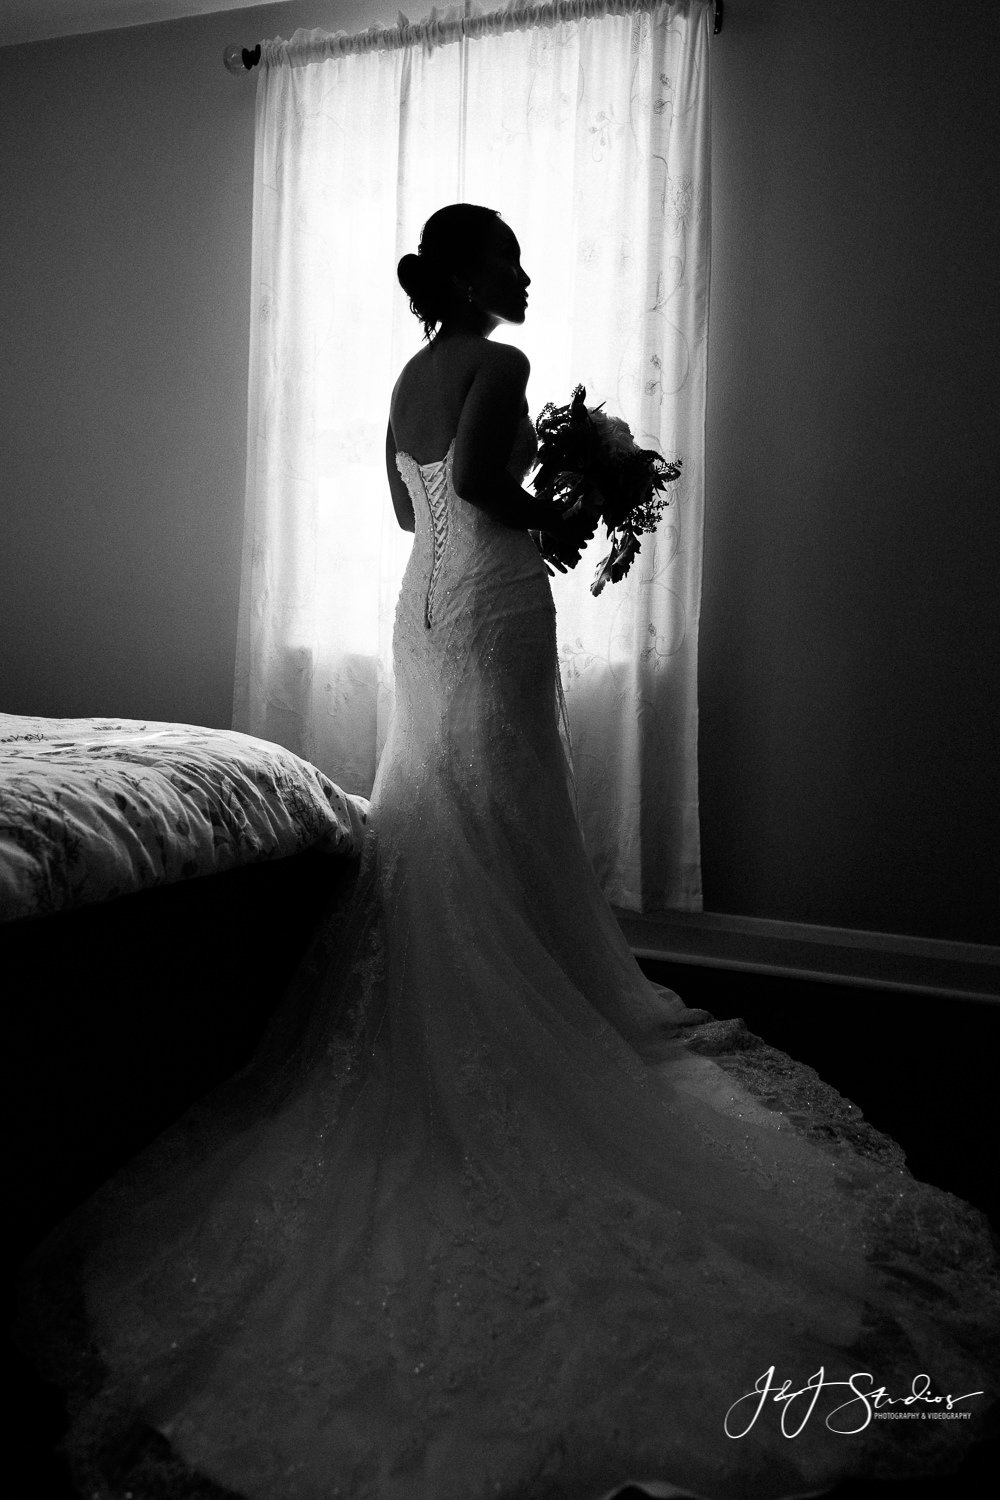 bride silhouette looking out window prior to her wedding at home